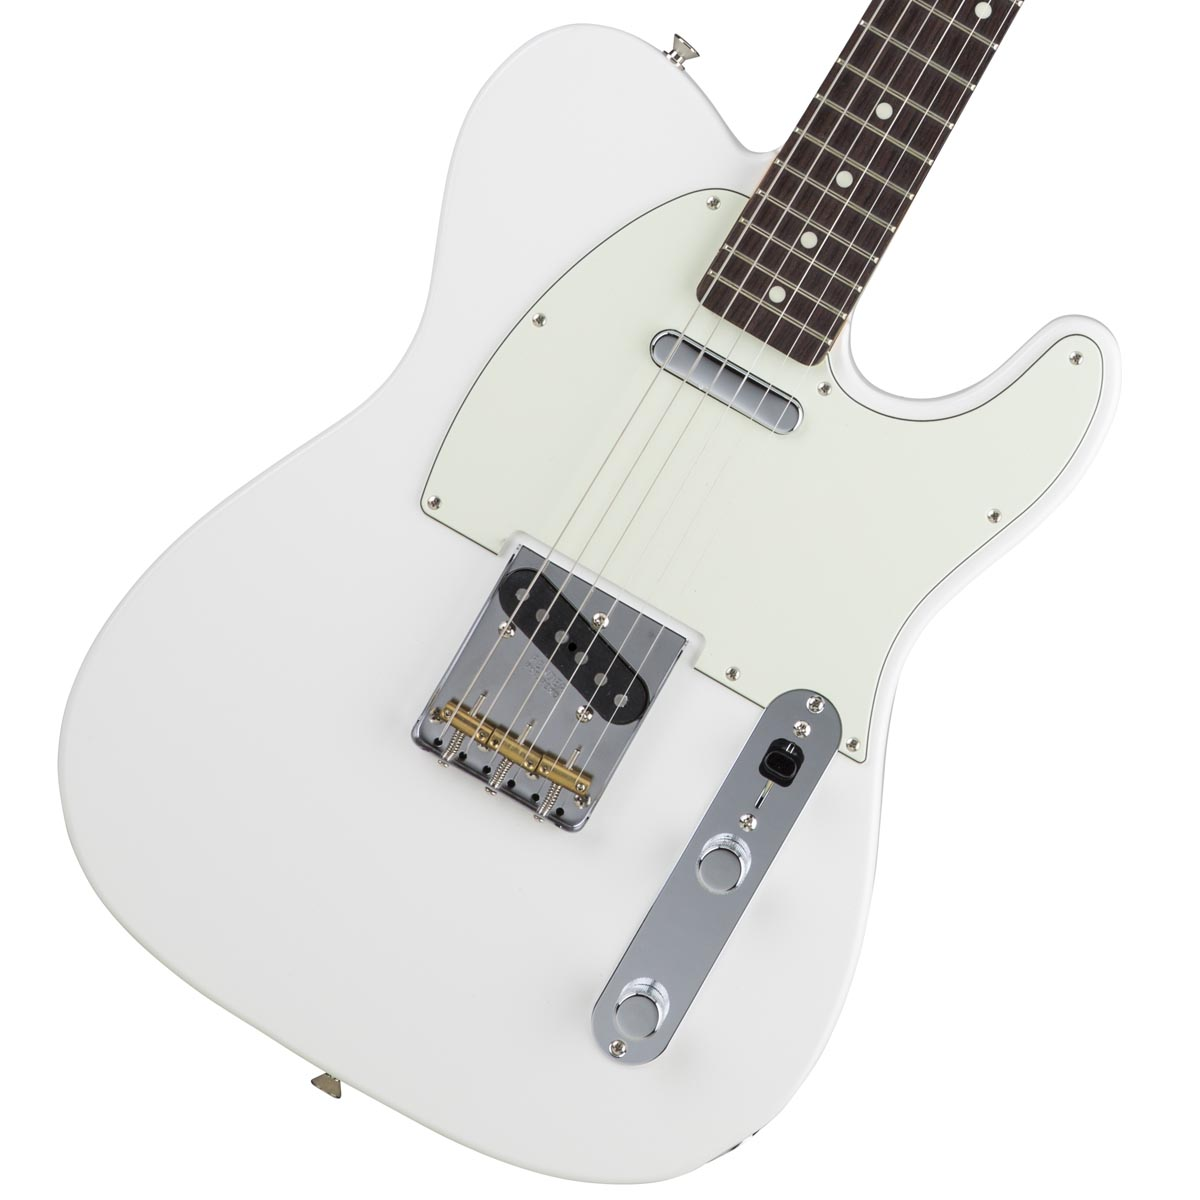 Fender / Made in Japan Hybrid 60s Telecaster Arctic White【YRK】《純正チューナーとピック12枚プレゼント!/+811179700》